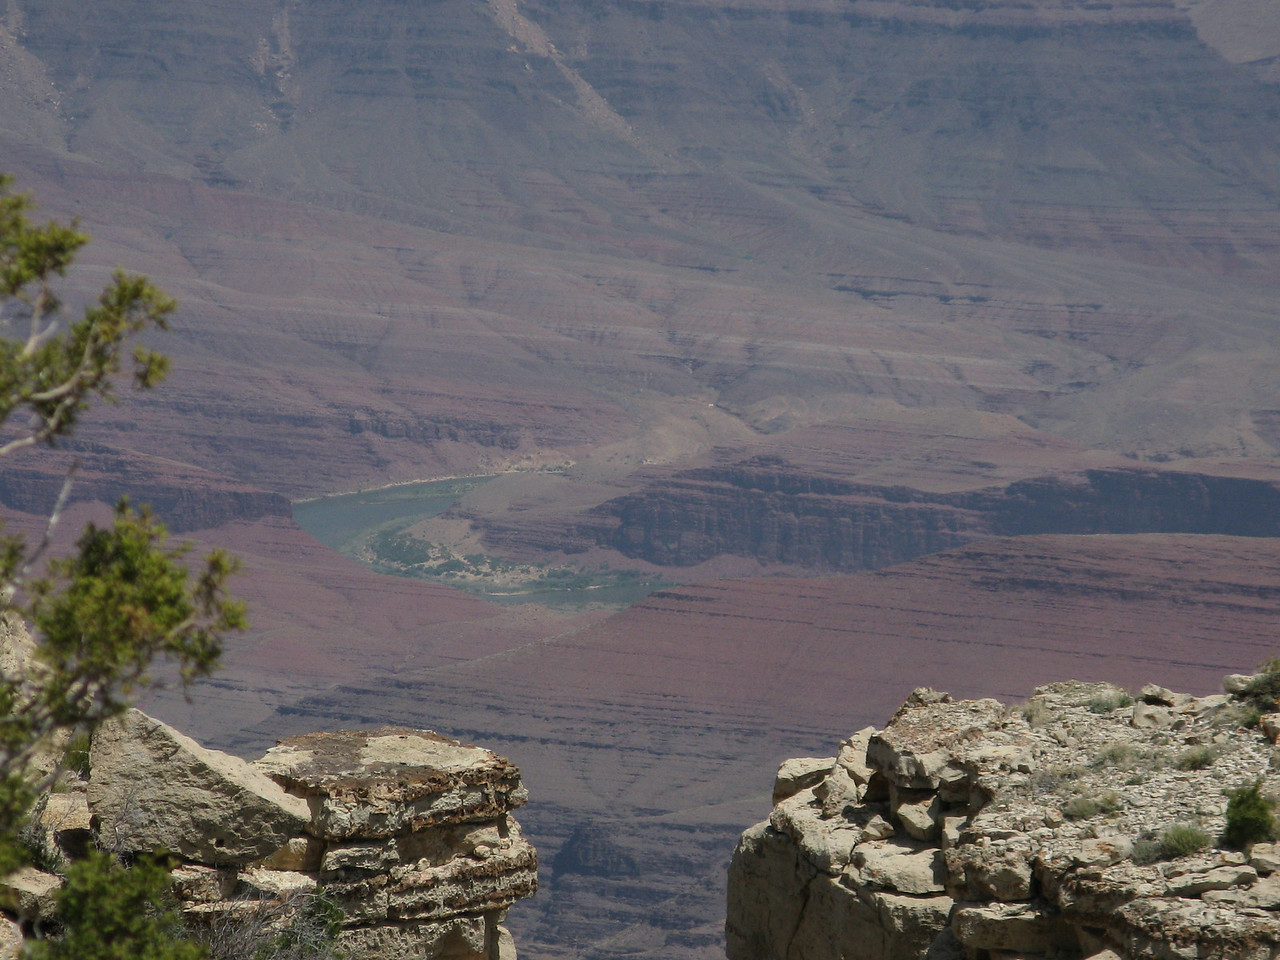 Unkar Rapid at mile 72.7 is in the center of the image.